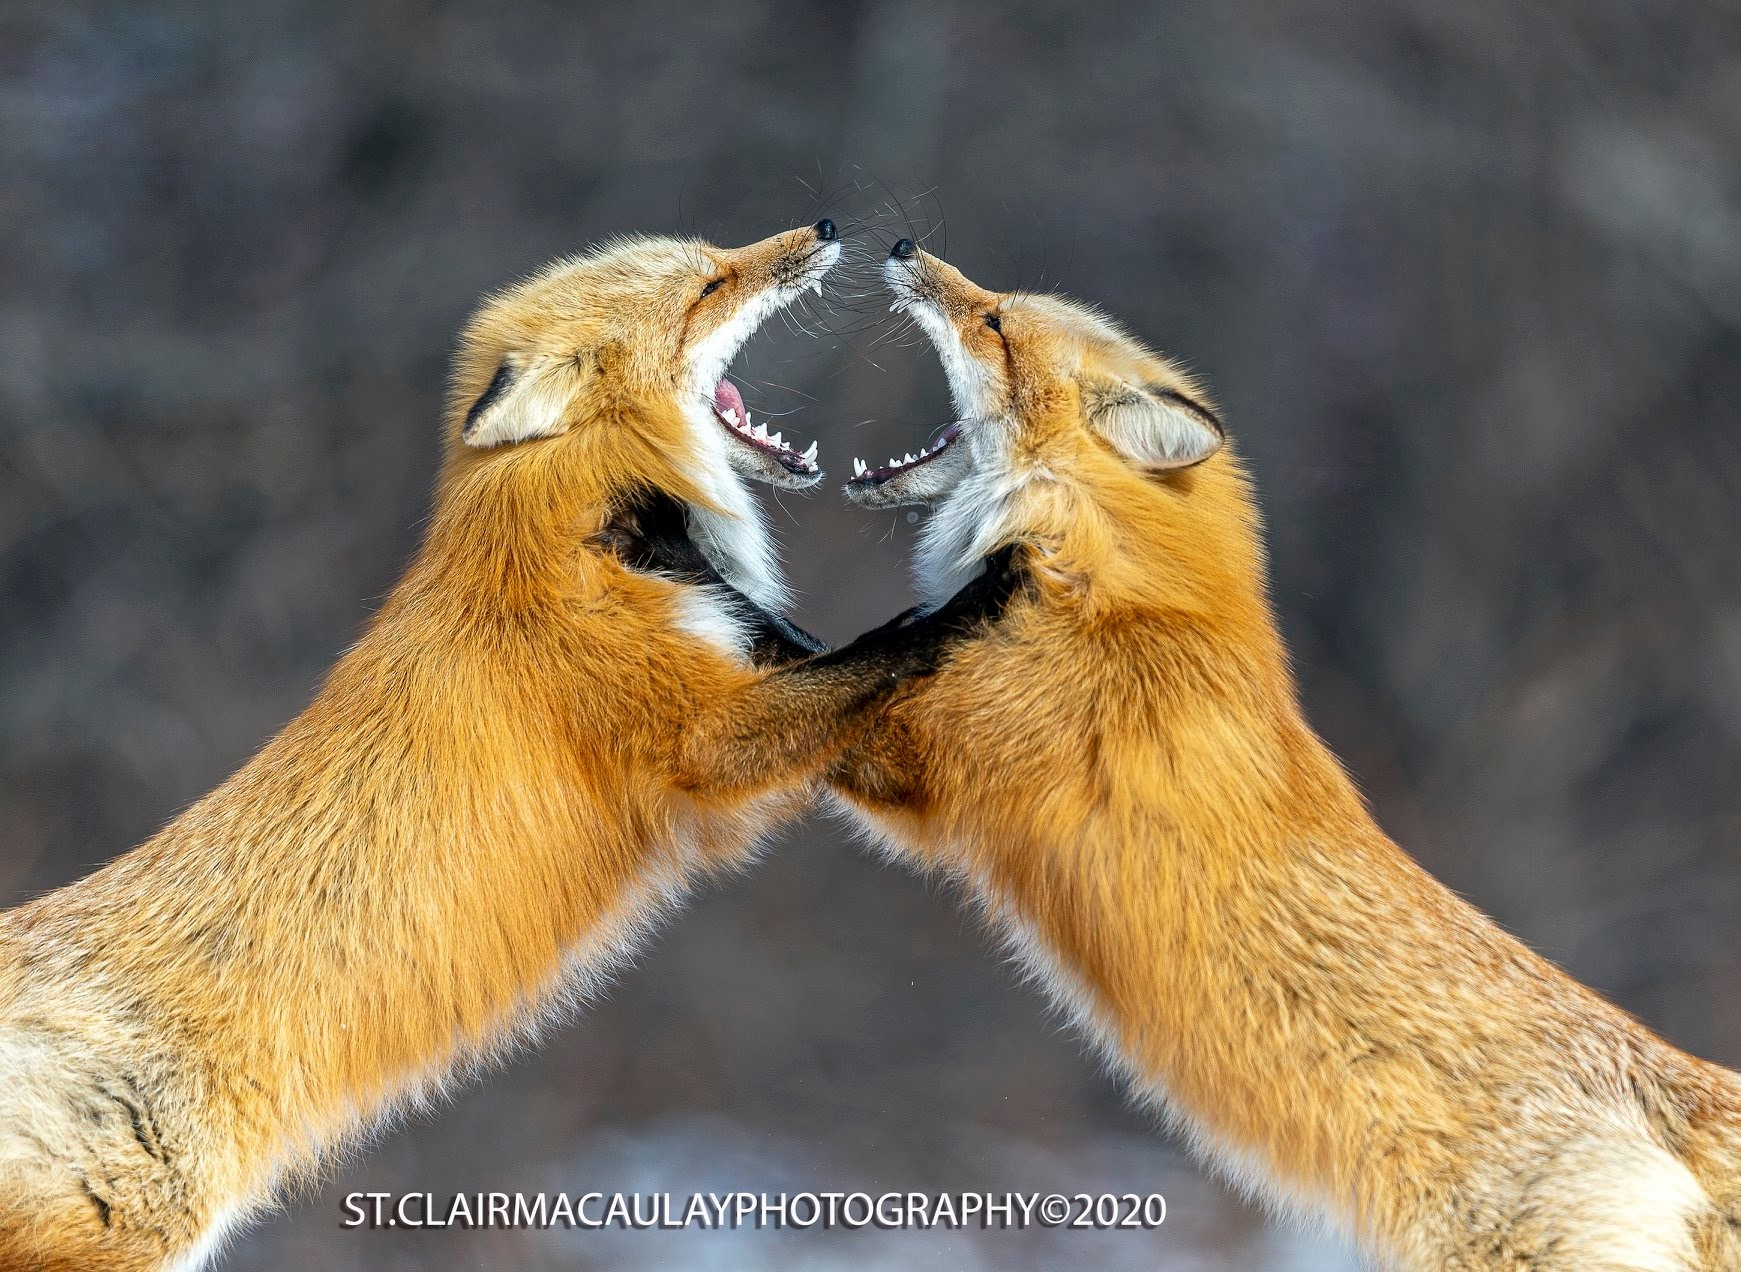 Two foxes play fight with their mouths wide open